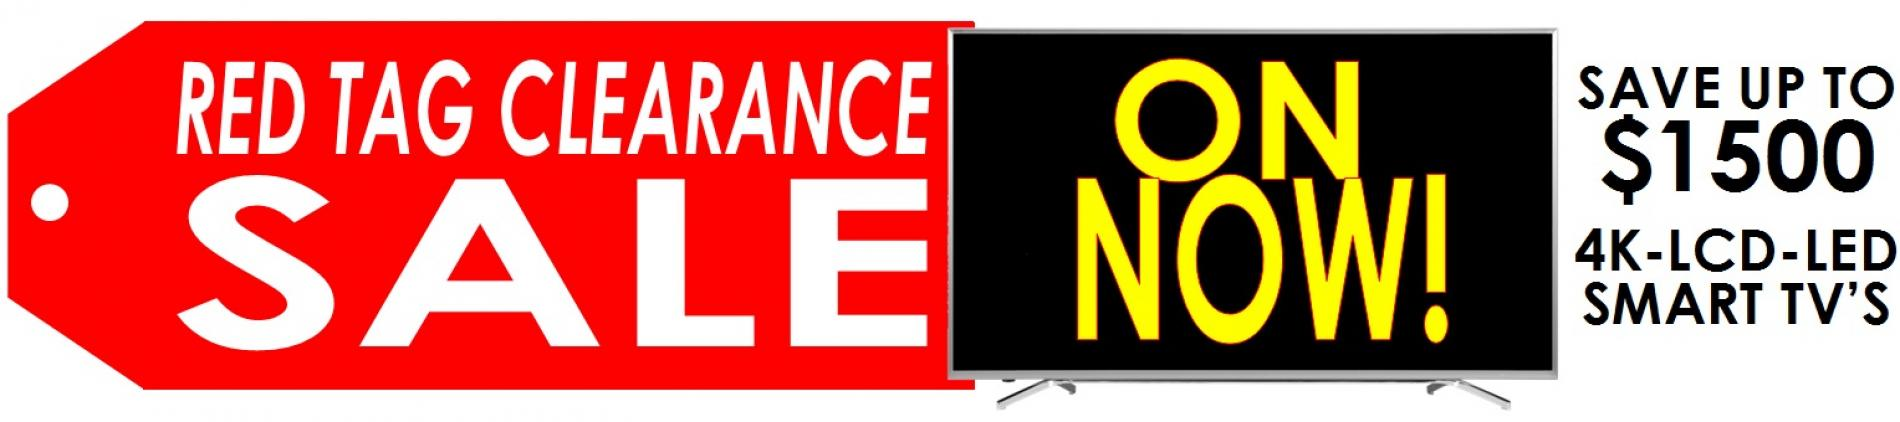 Red Tag Clearance Sale